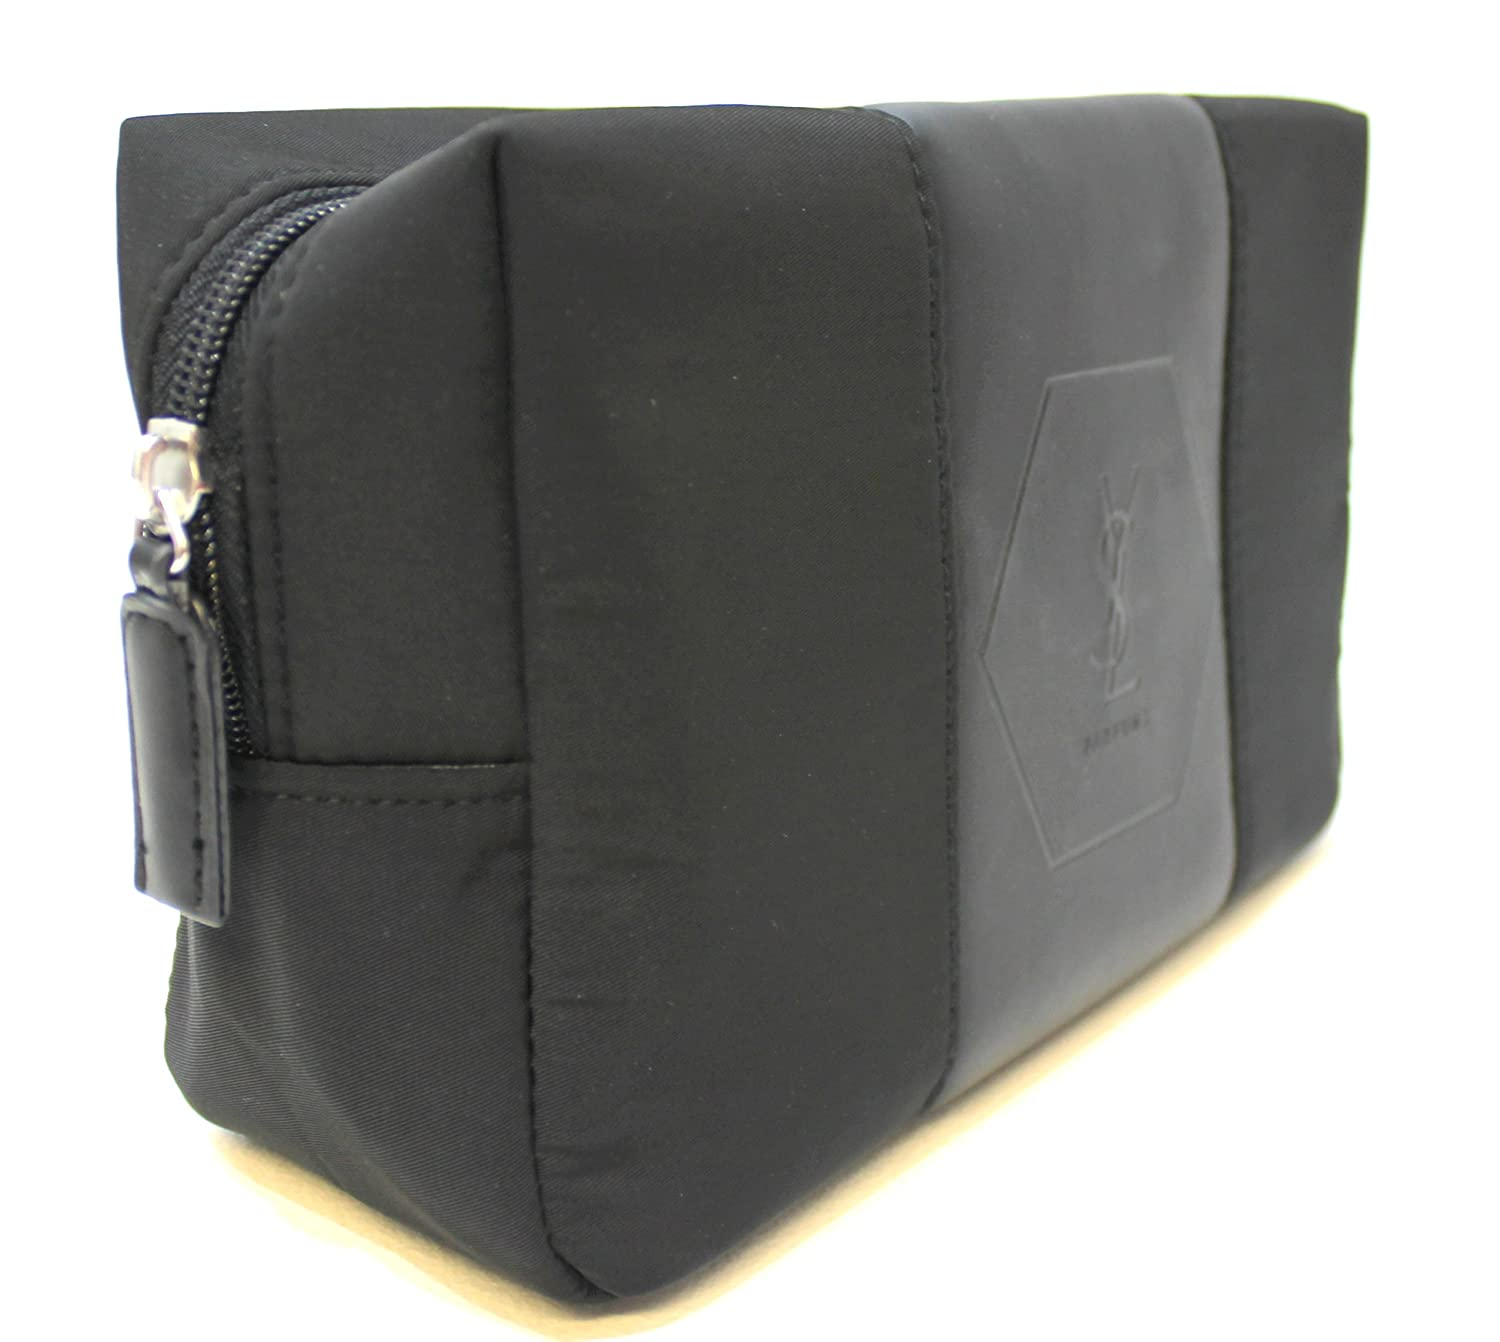 5c65e8688785 YSL - Yves Saint Laurent parfums blac pouch   toiletry   wash bag for men    new  Amazon.co.uk  Luggage